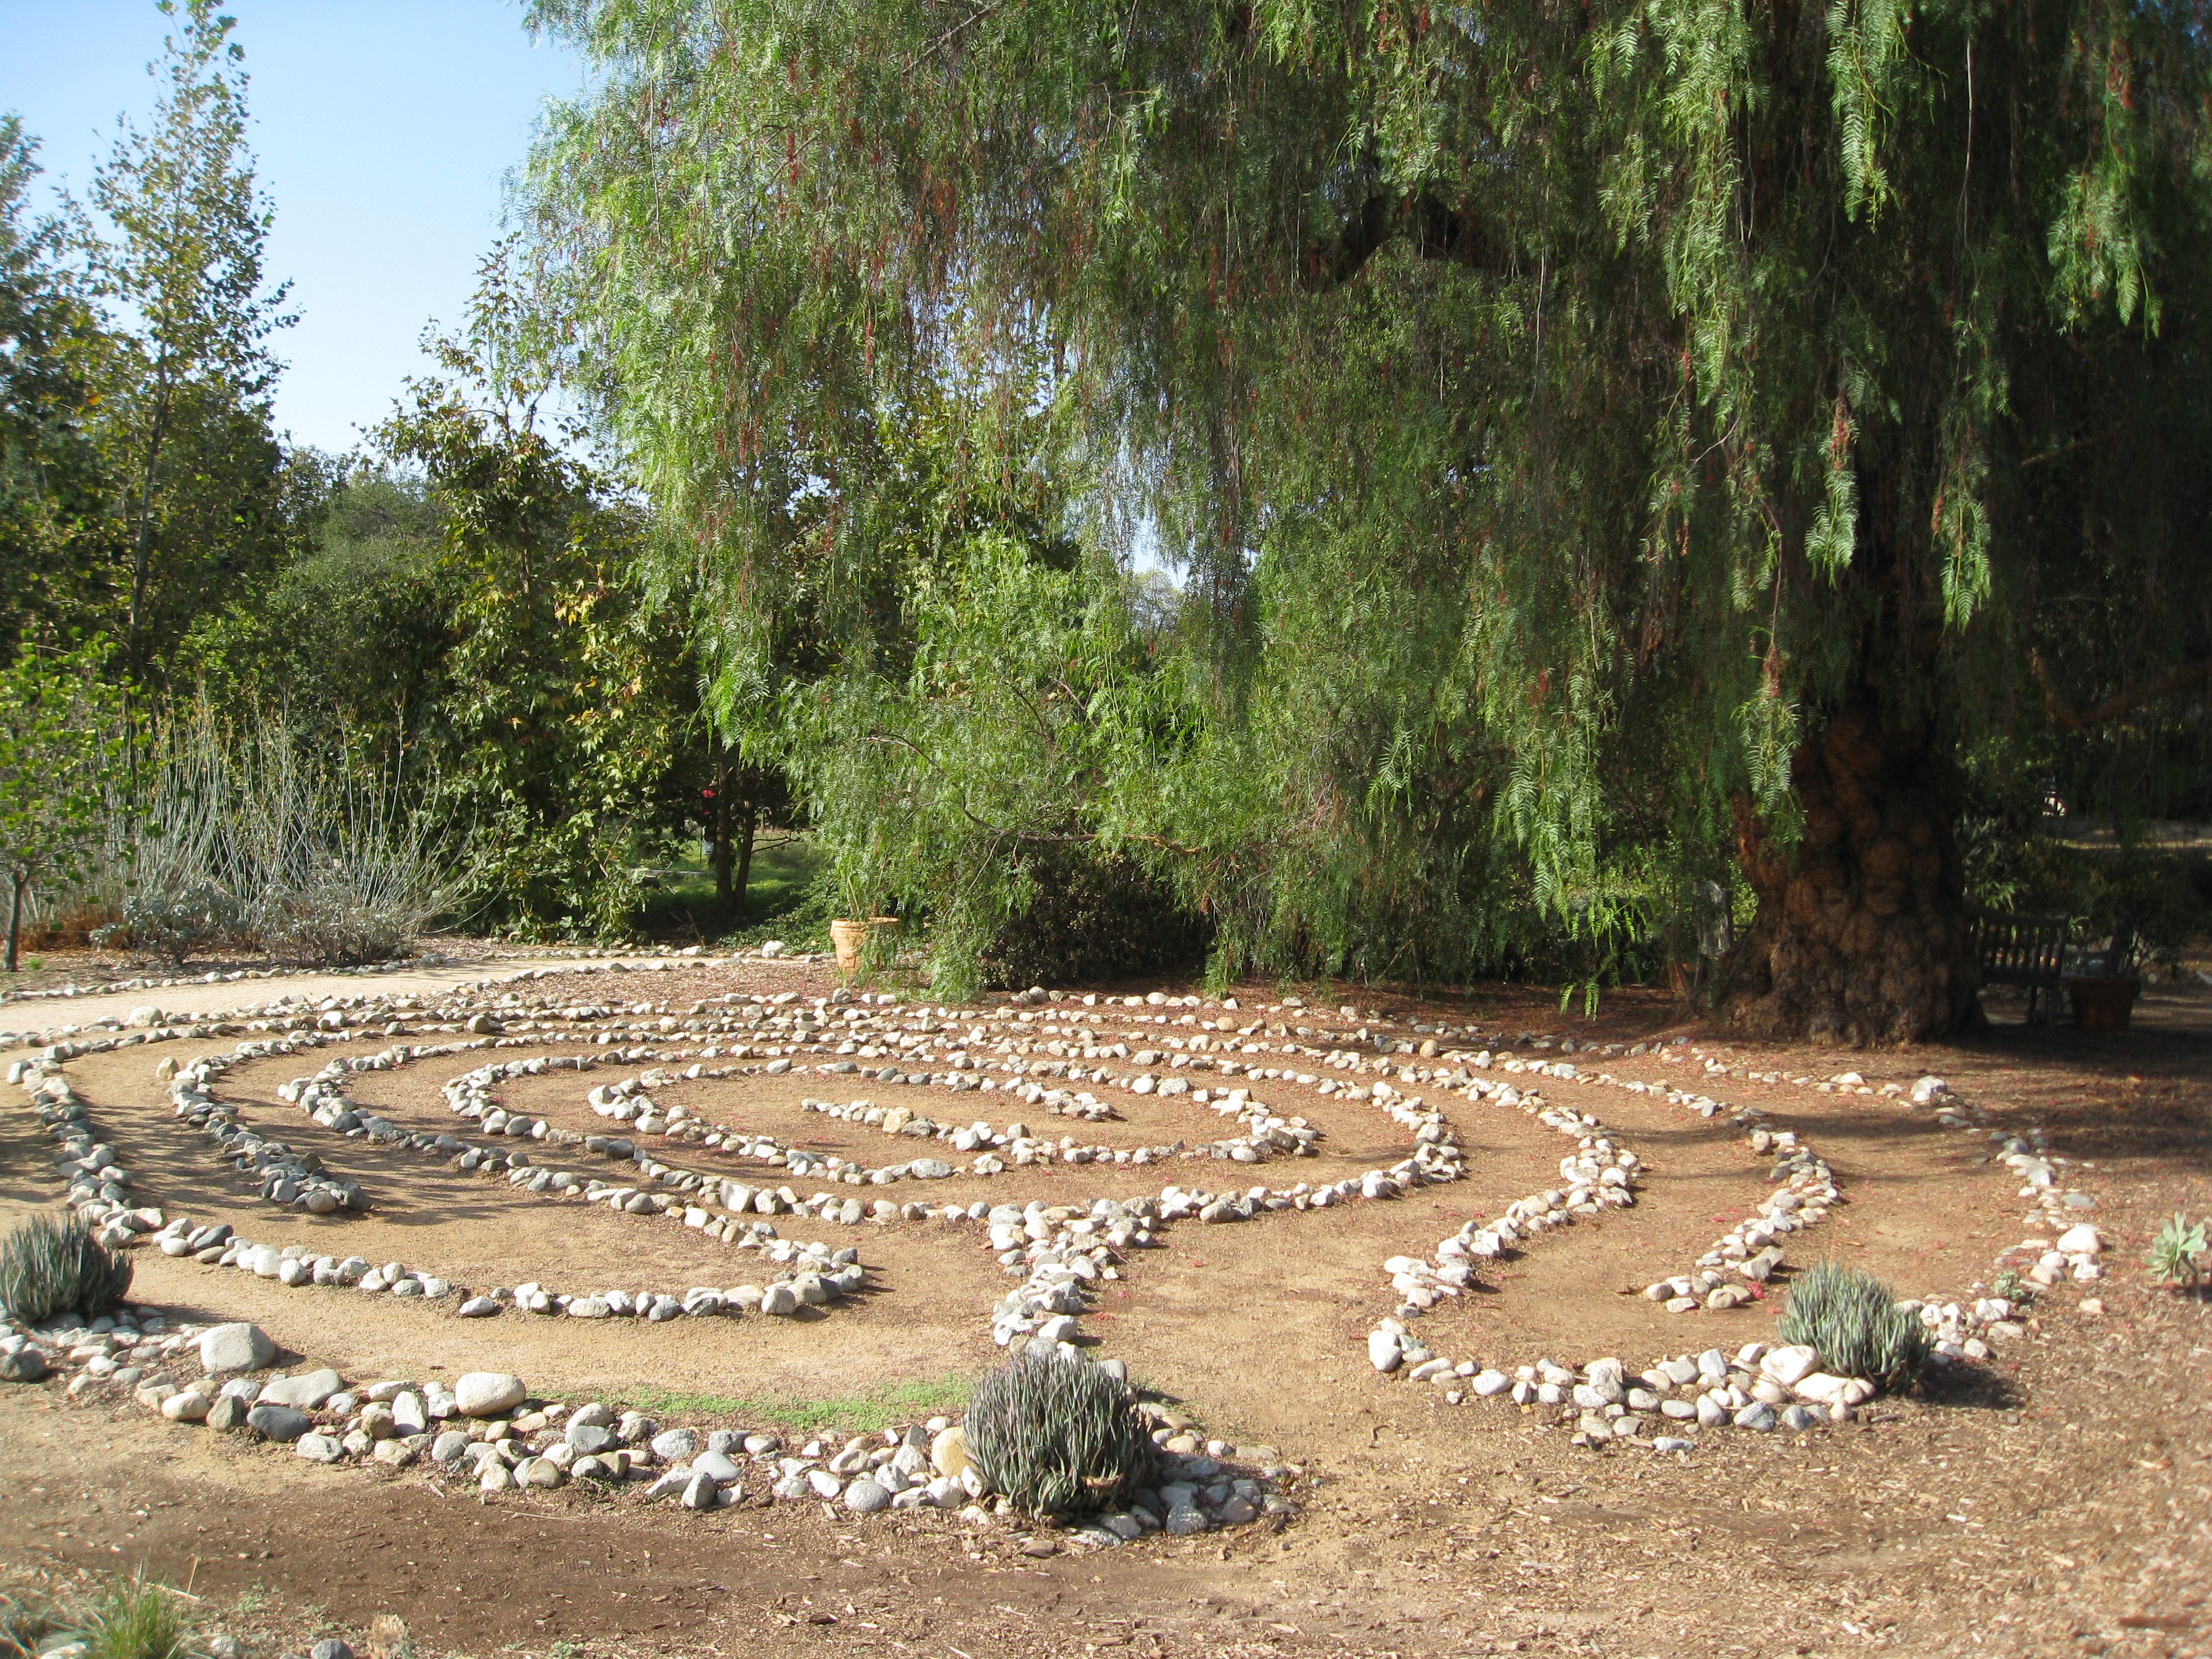 The labyrinth is watched over by an ancient California pepper tree.